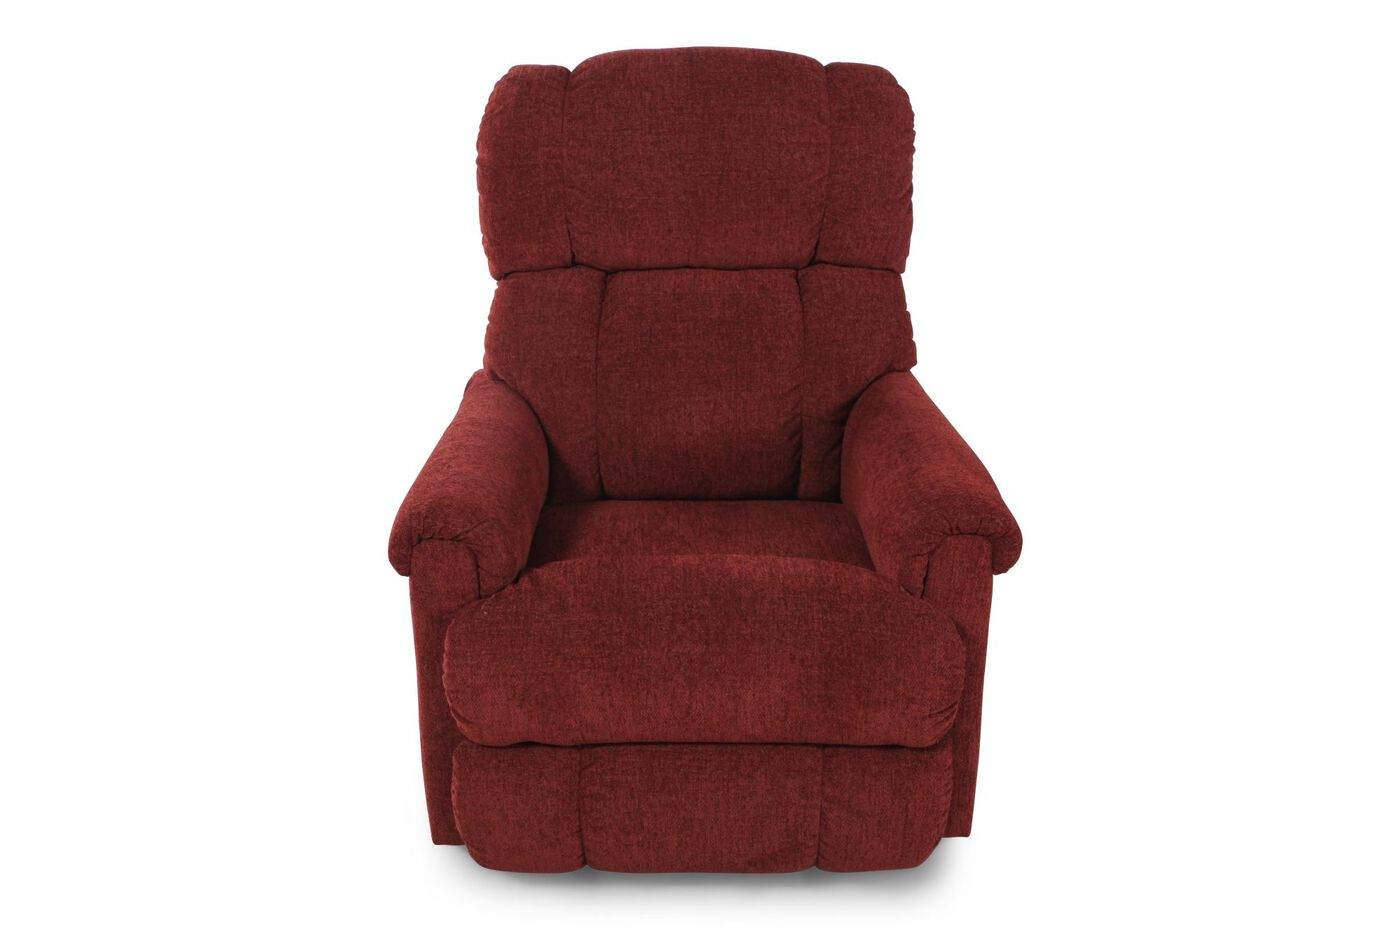 512 C107787 moreover Recliners besides Leather Dining Room Chairs Clearance furthermore 1713294306 also Lazy Boy Sofa Loveseat Recliners. on la z boy 10 512 pinnacle rocker recliner